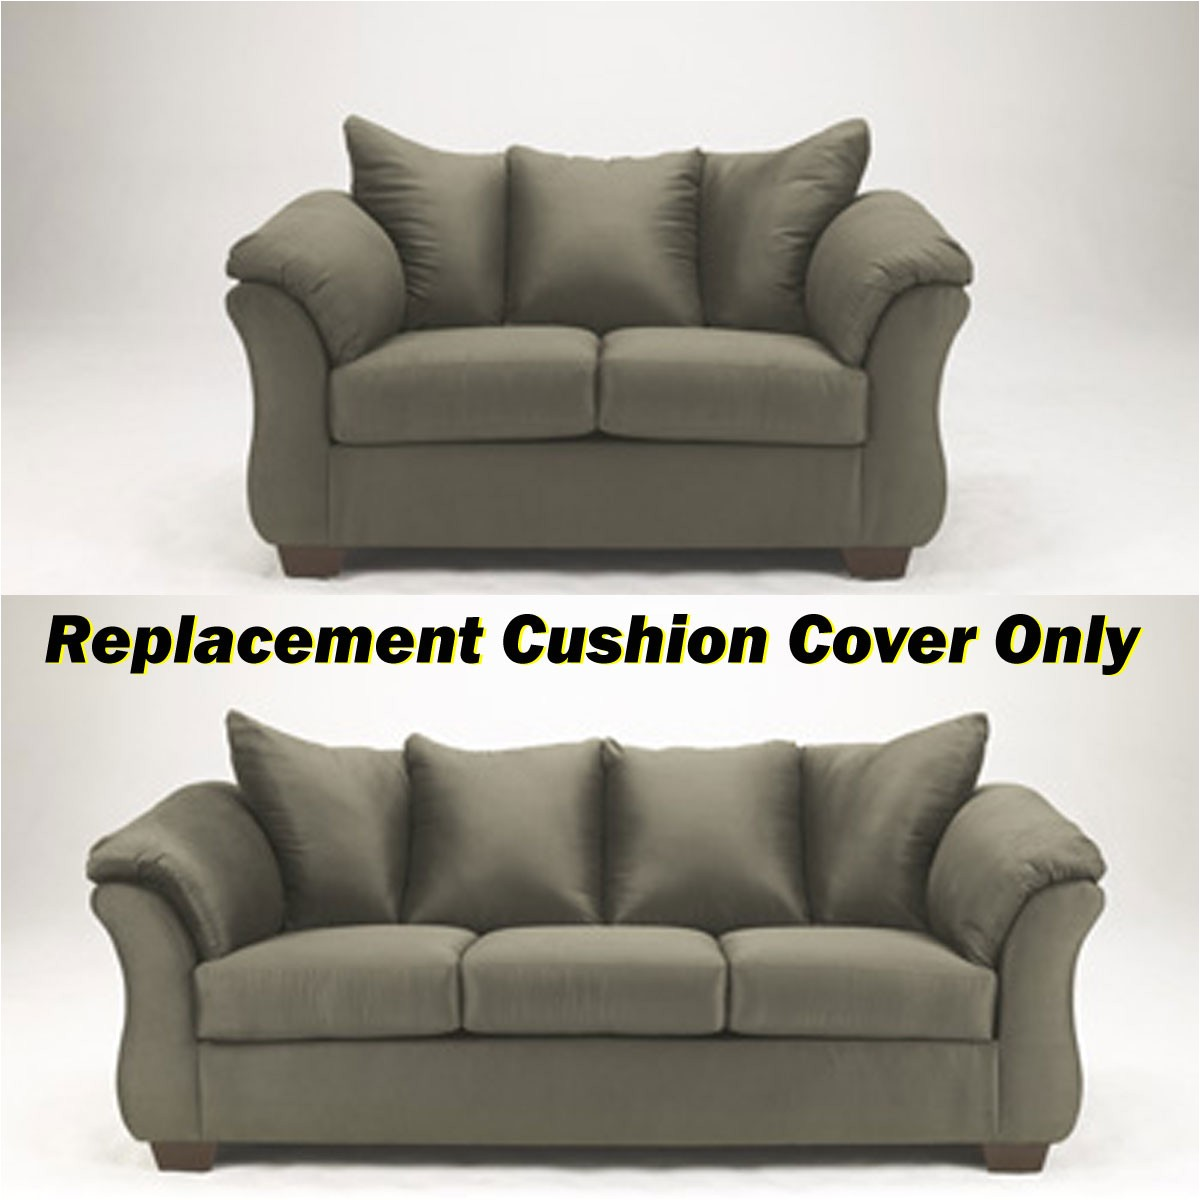 ashley darcy replacement cushion cover only 7500338 or 7500335 sage p 81666